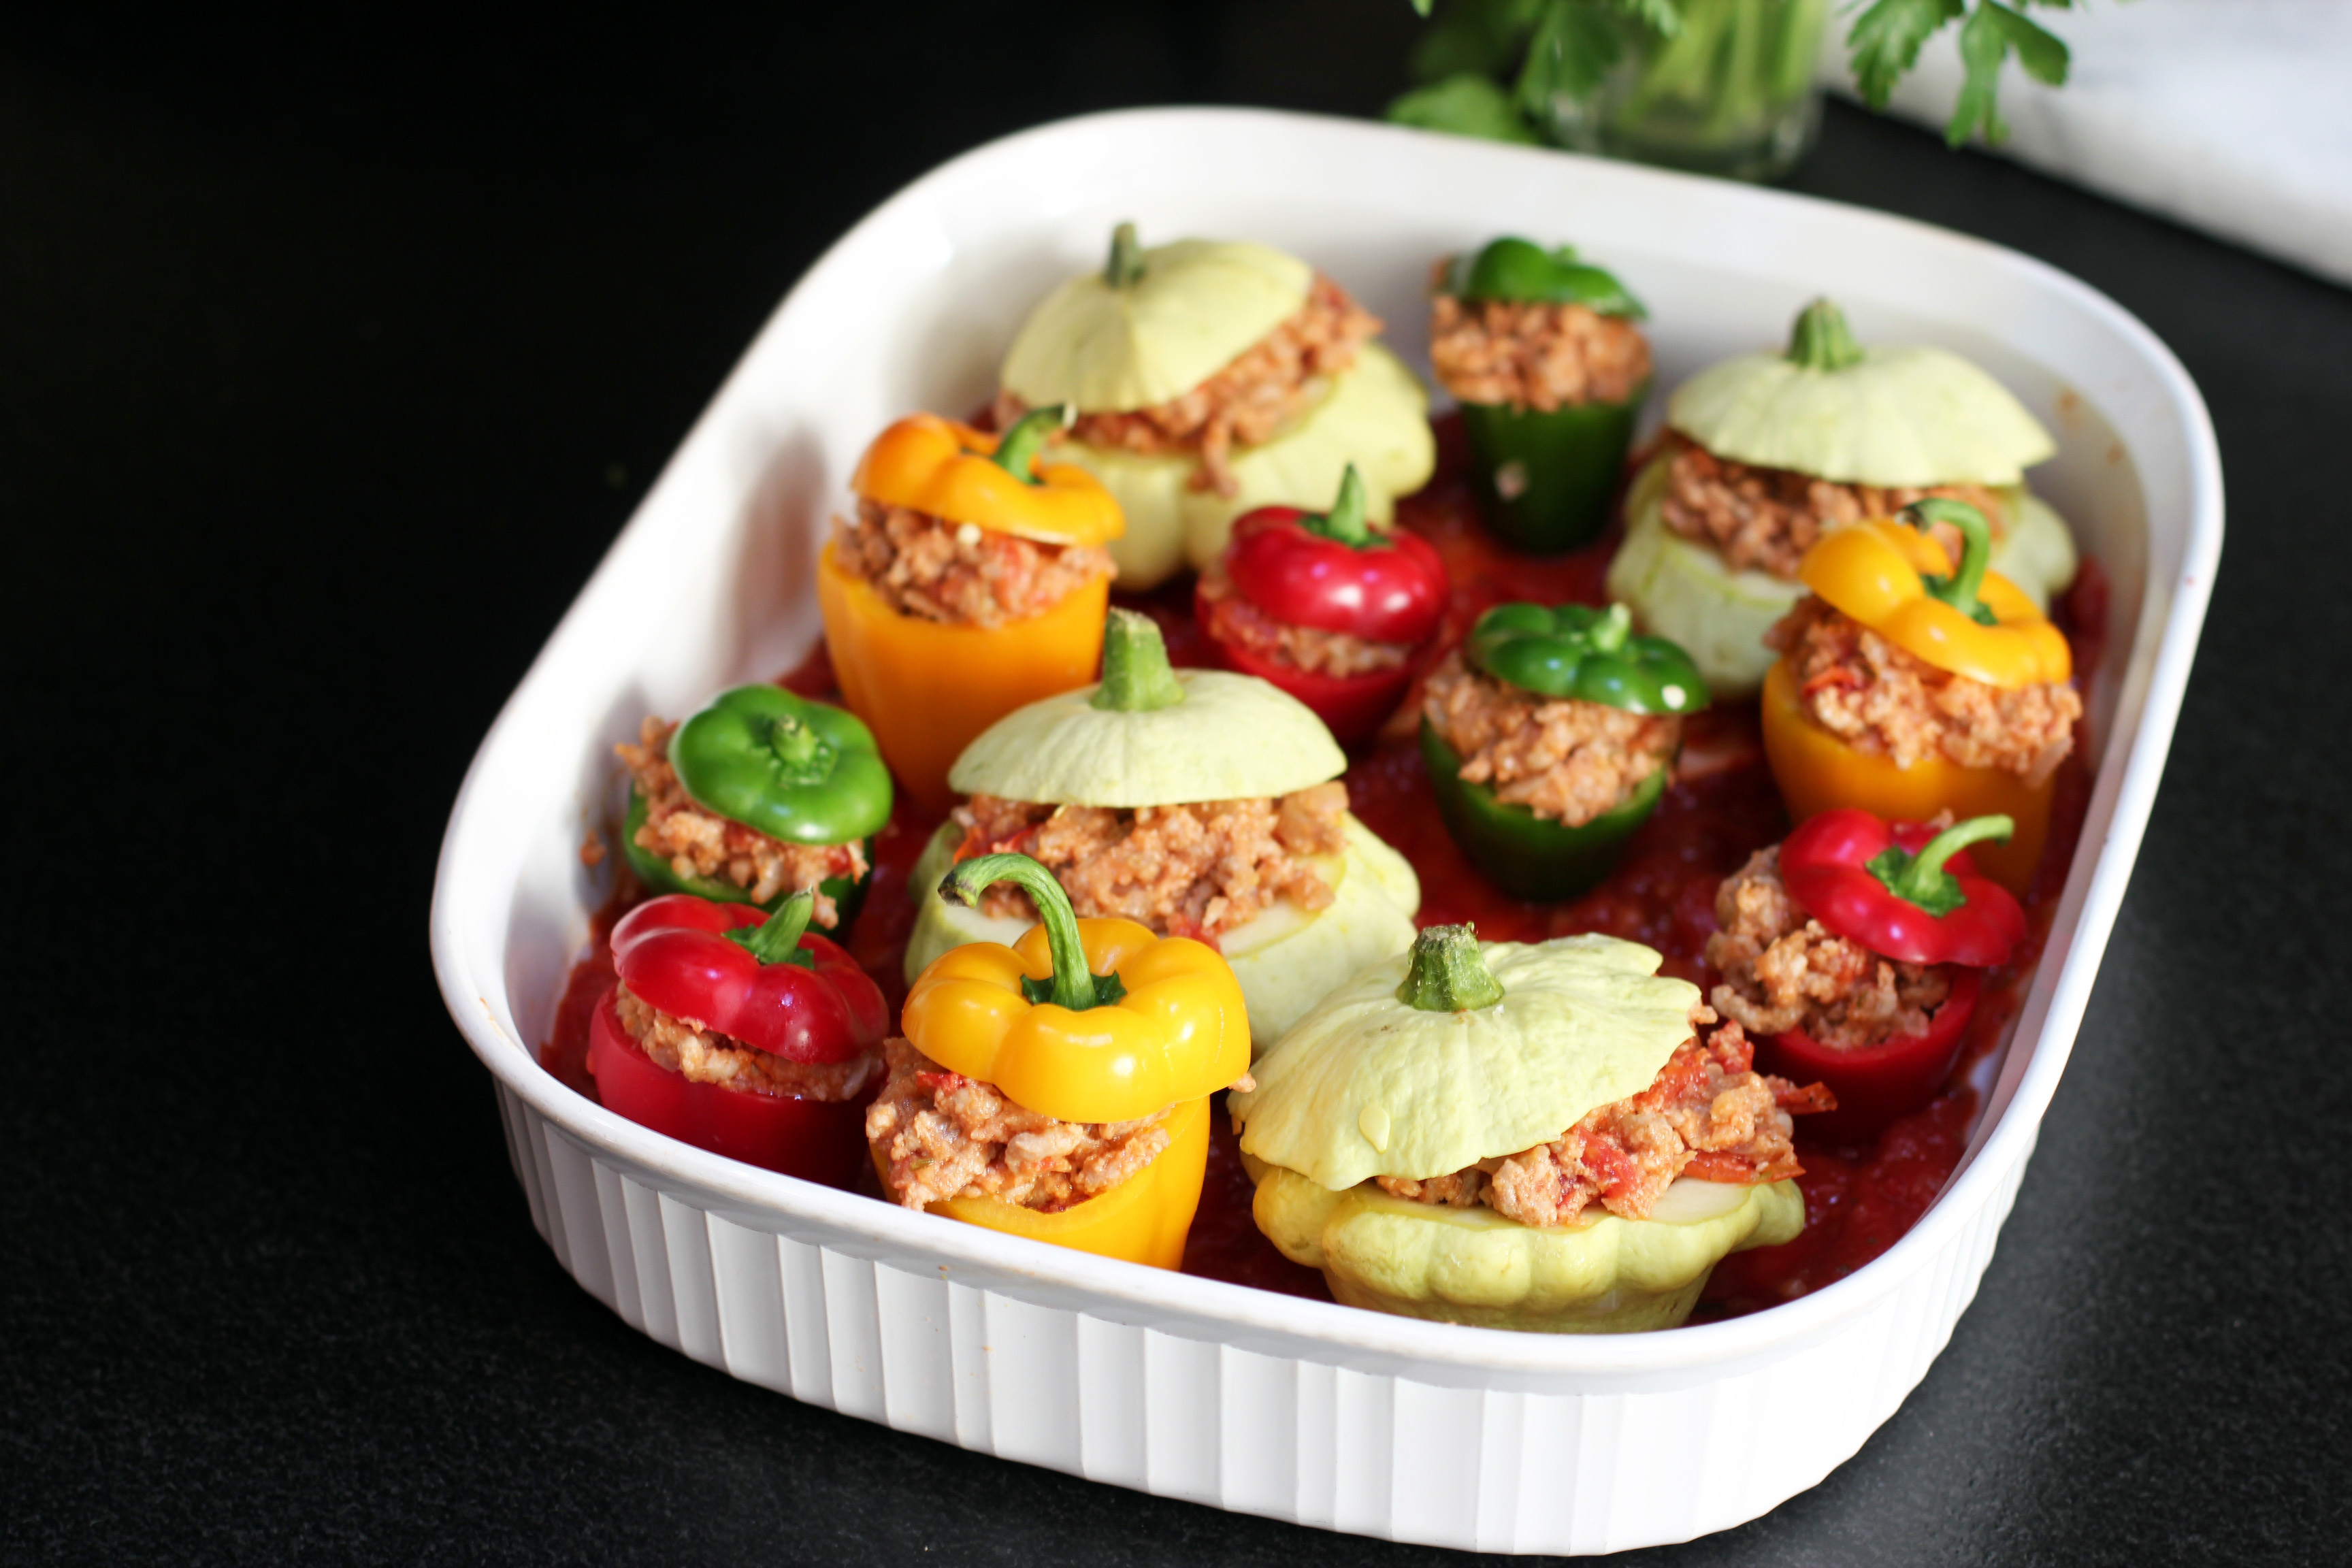 Veal Stuffed Mini Peppers and Patty Pan Squash